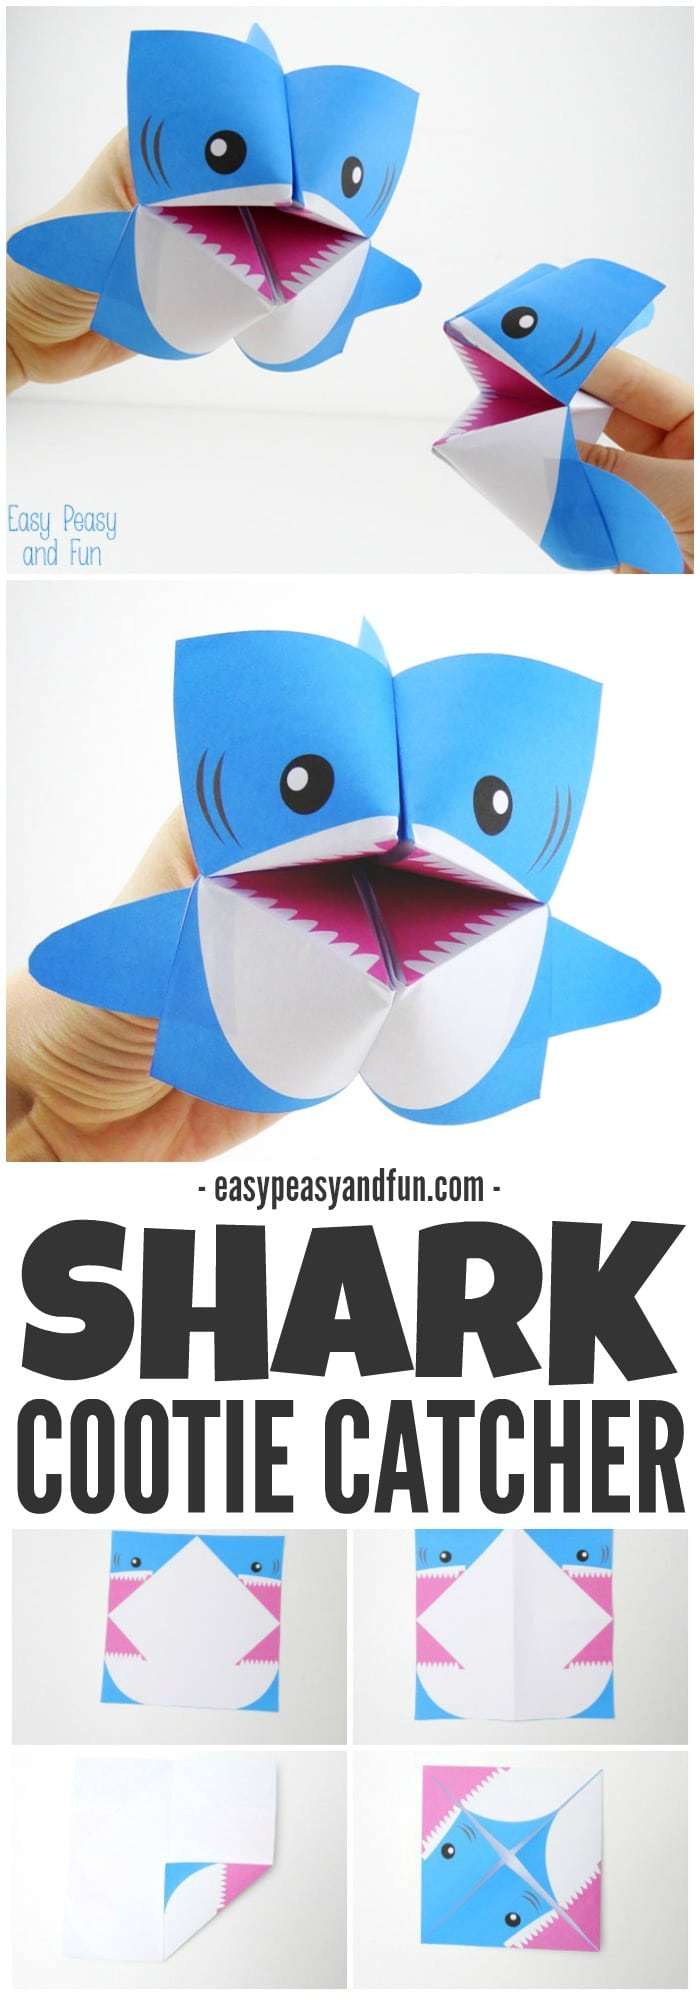 Printable Shark Cootie Catcher